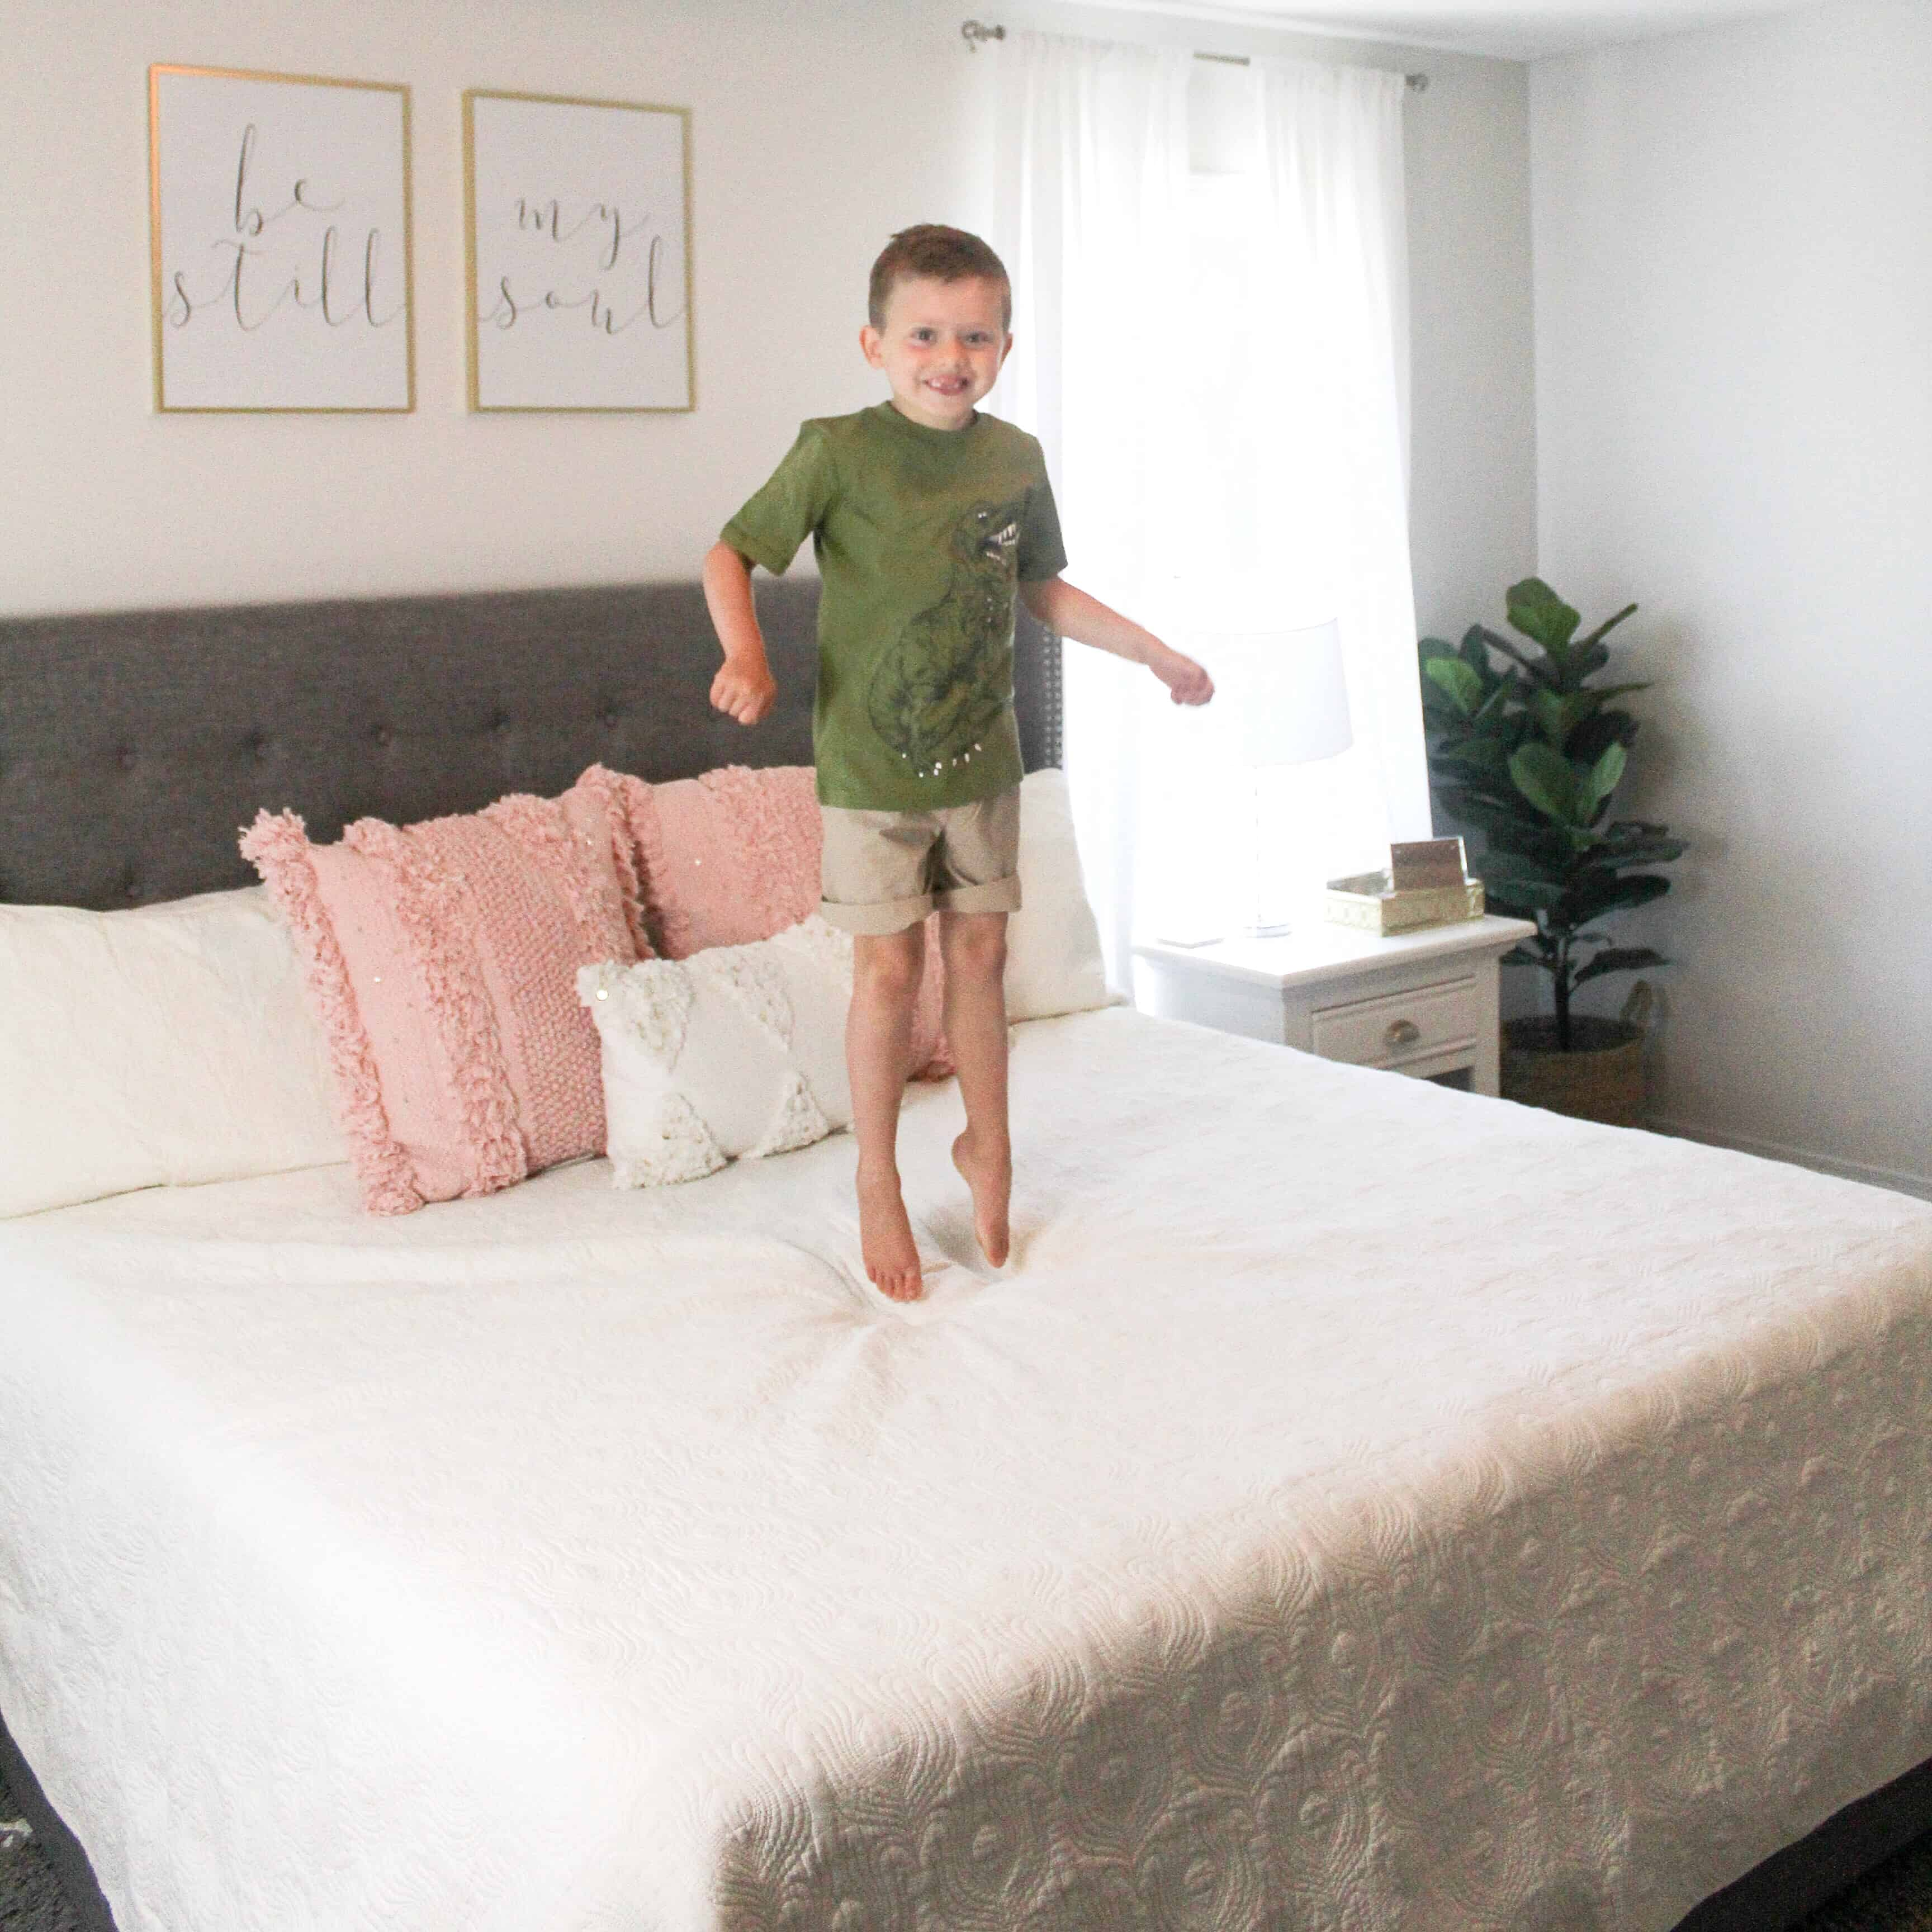 Little boy jumping on bed in Carter's Clothes